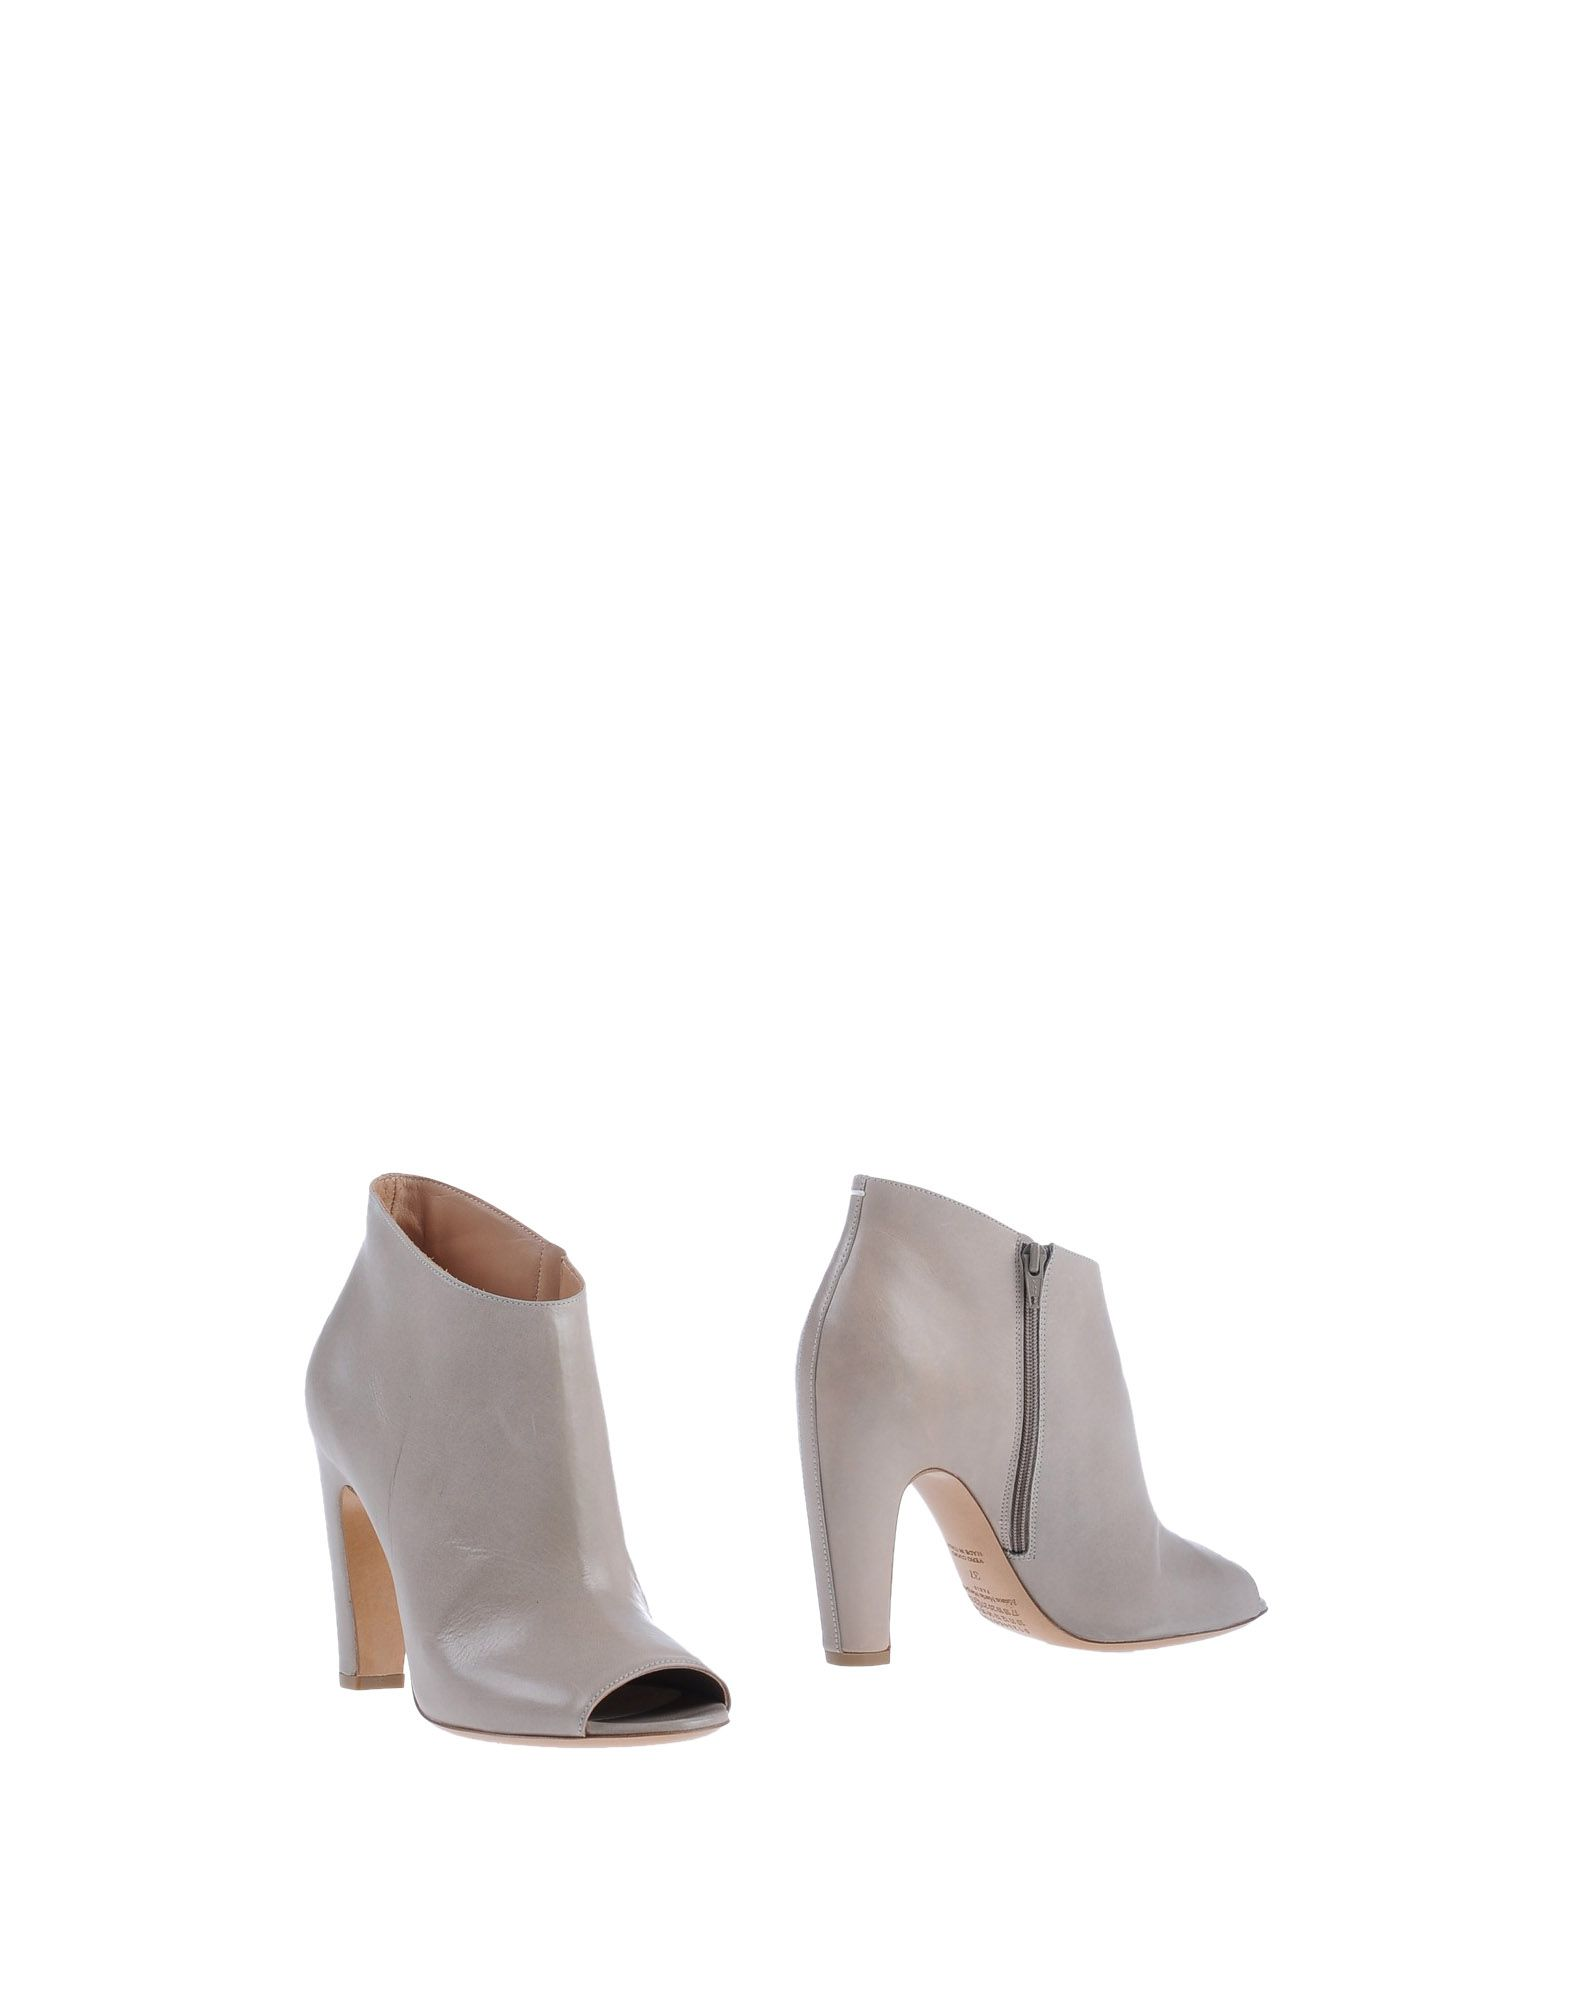 MAISON MARGIELA Booties. no appliqués, solid color, zip closure, open toe, leather sole, covered heel. Soft Leather